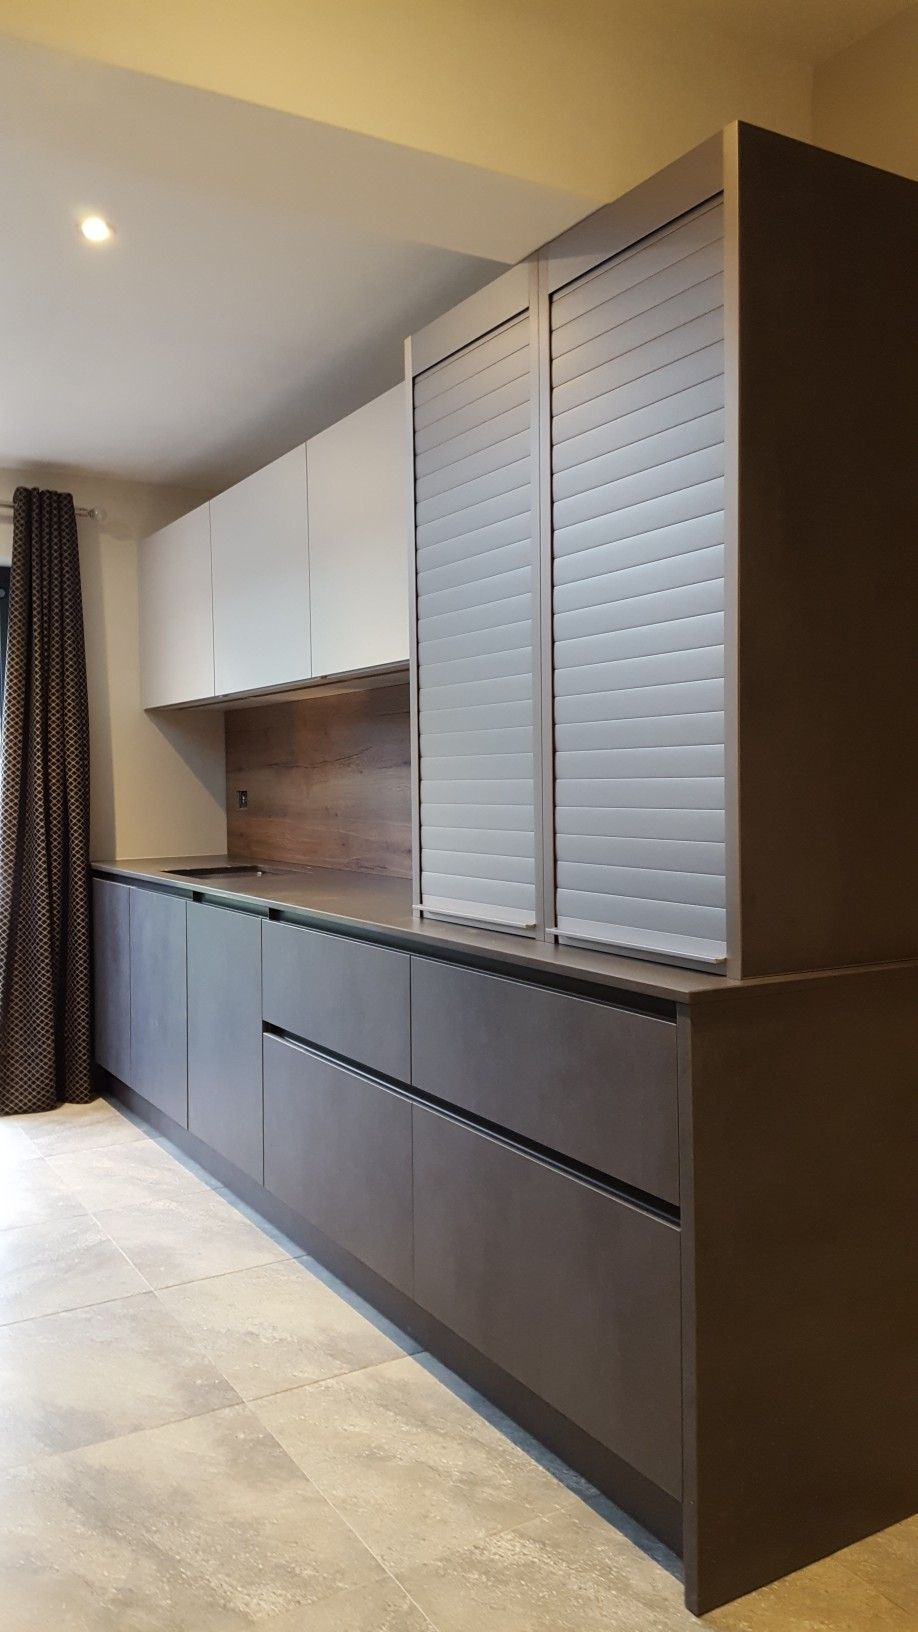 Roller Shutter Tambour Units From Leicht Contact Hubble Kitchens